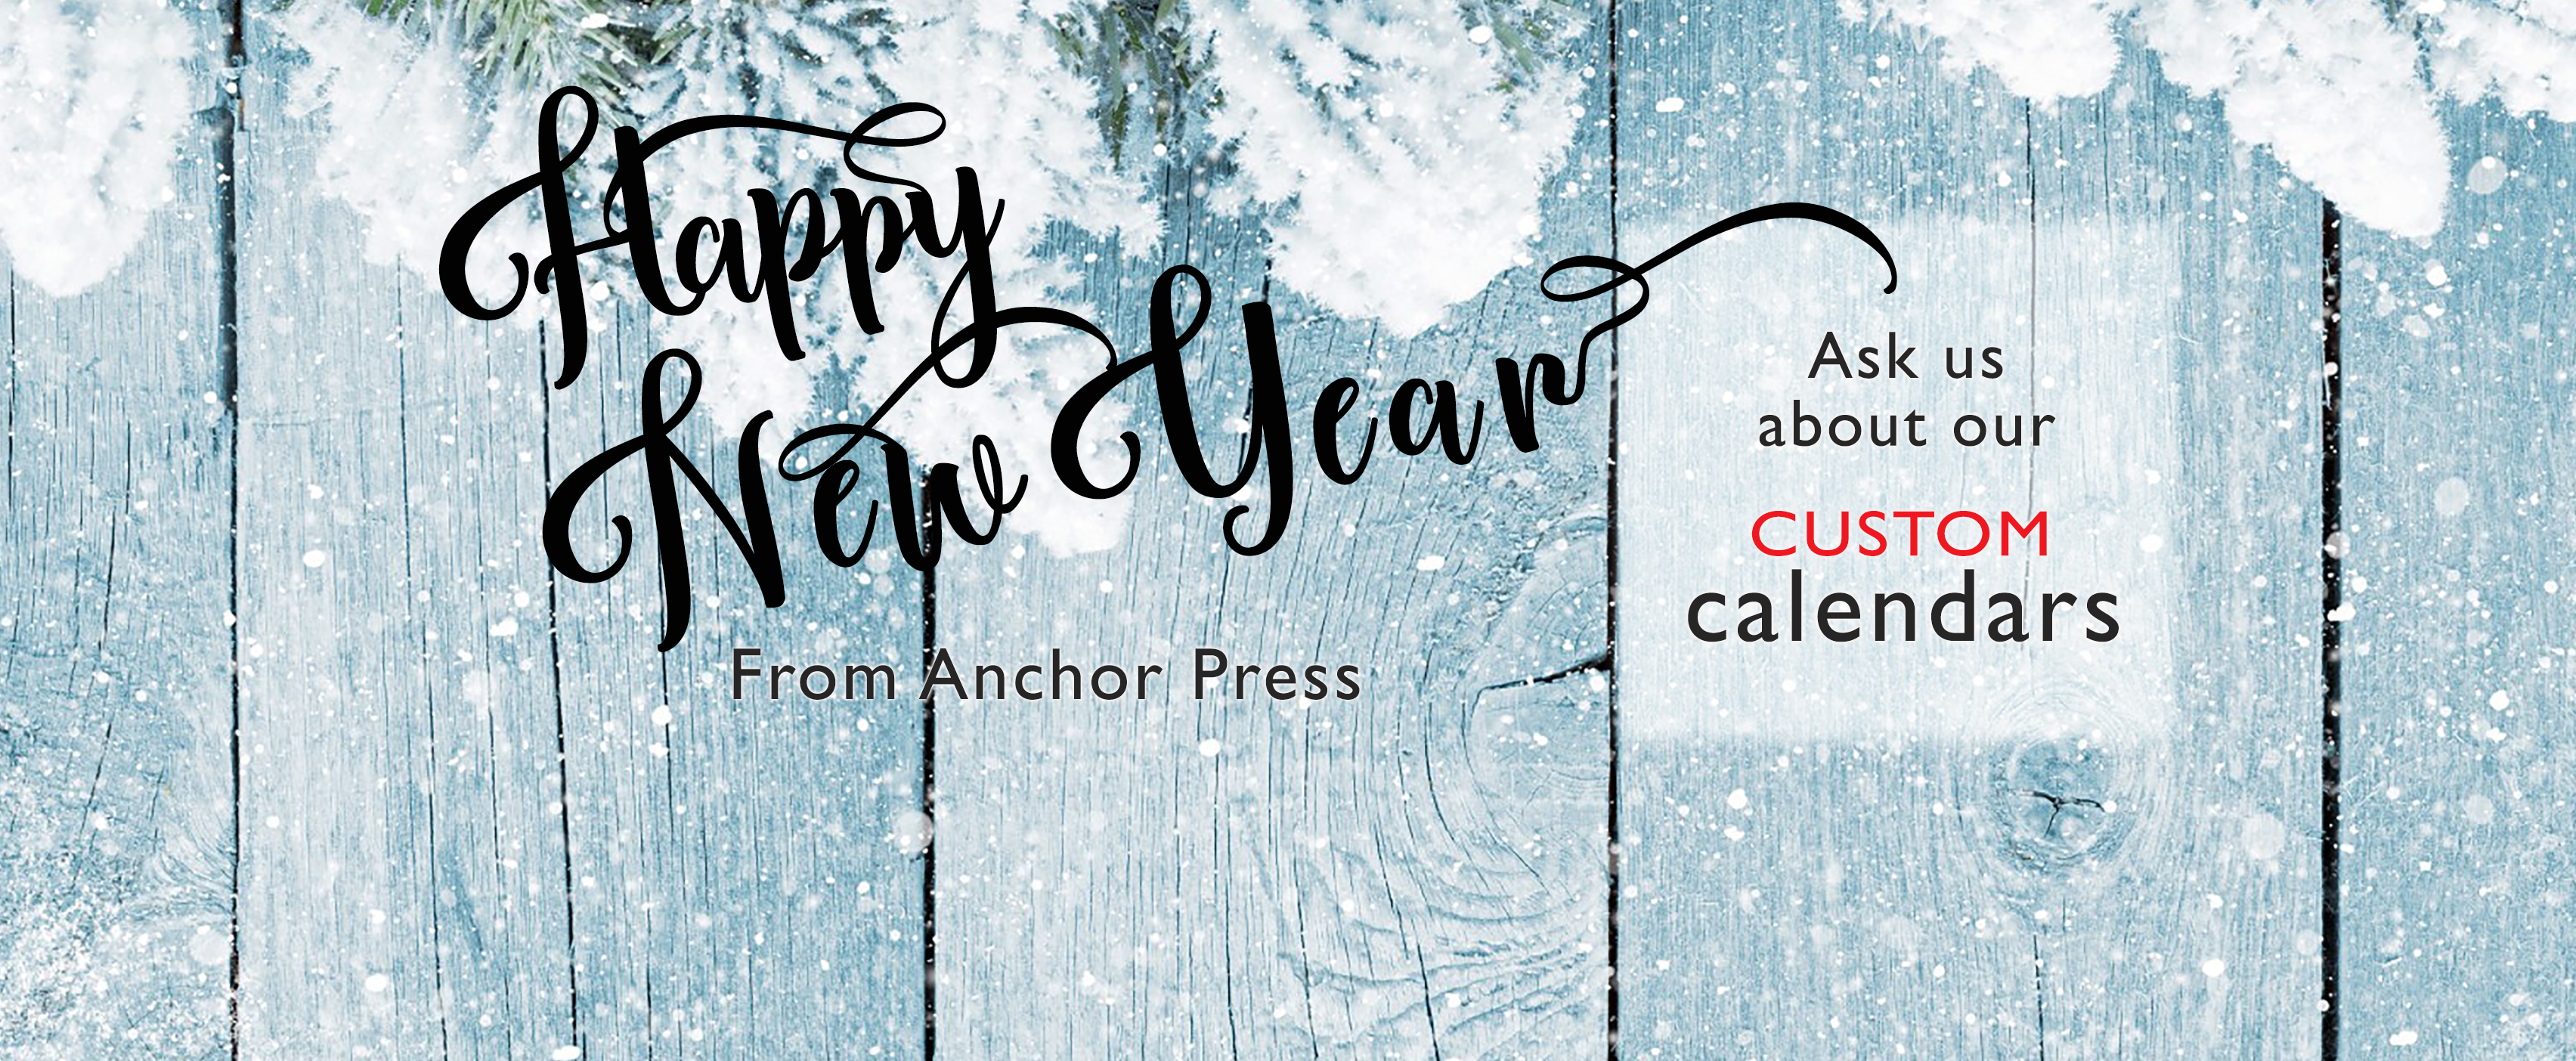 Happy New Year from Anchor Press